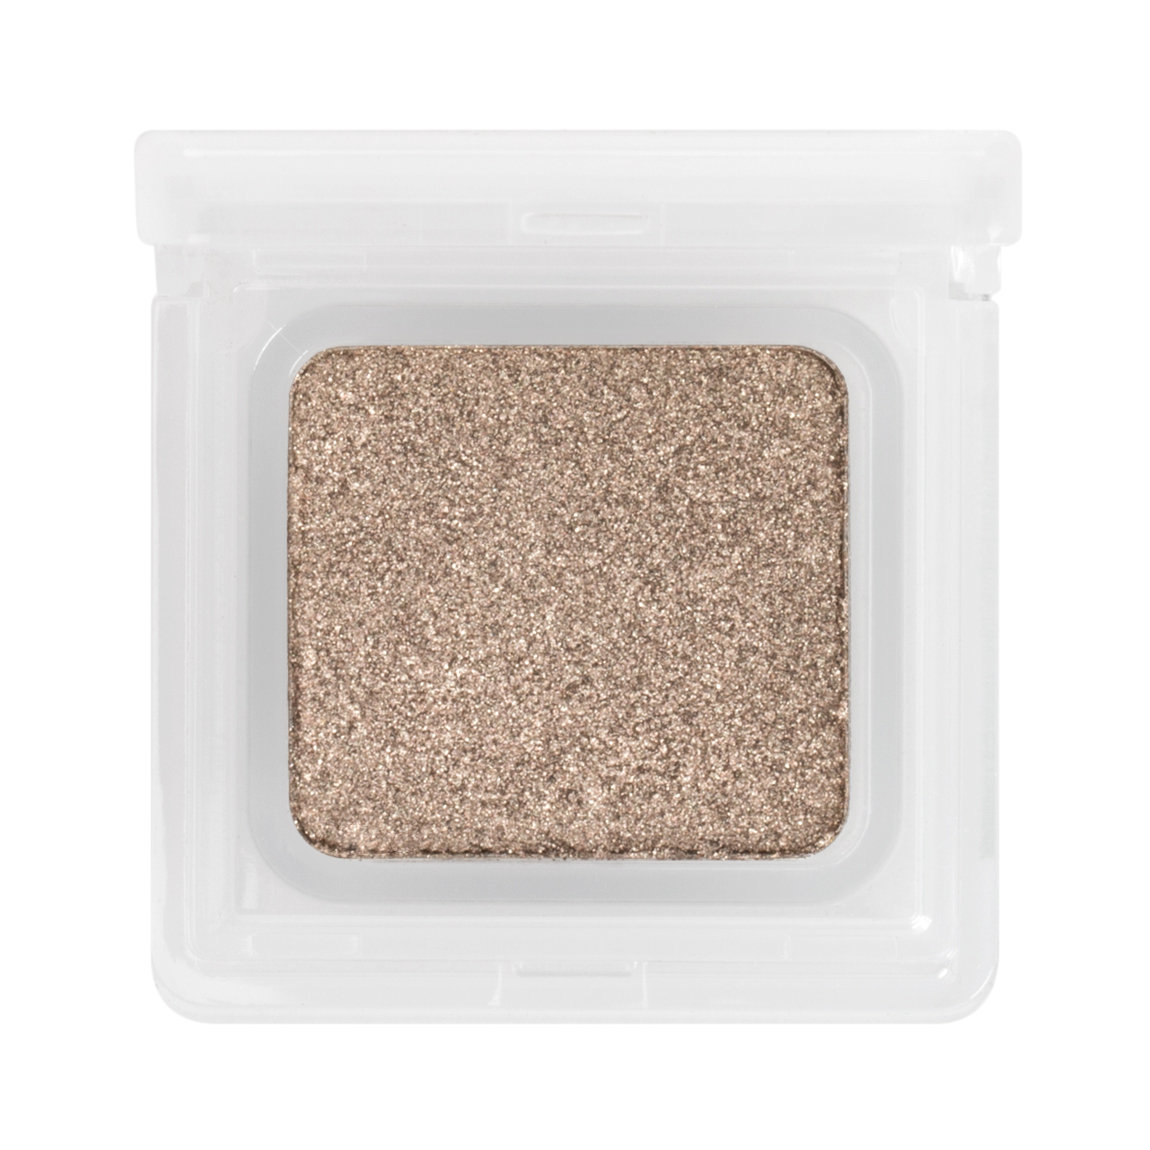 Natasha Denona Mono Eye Shadow Sparkling 45M - Industrial alternative view 1 - product swatch.